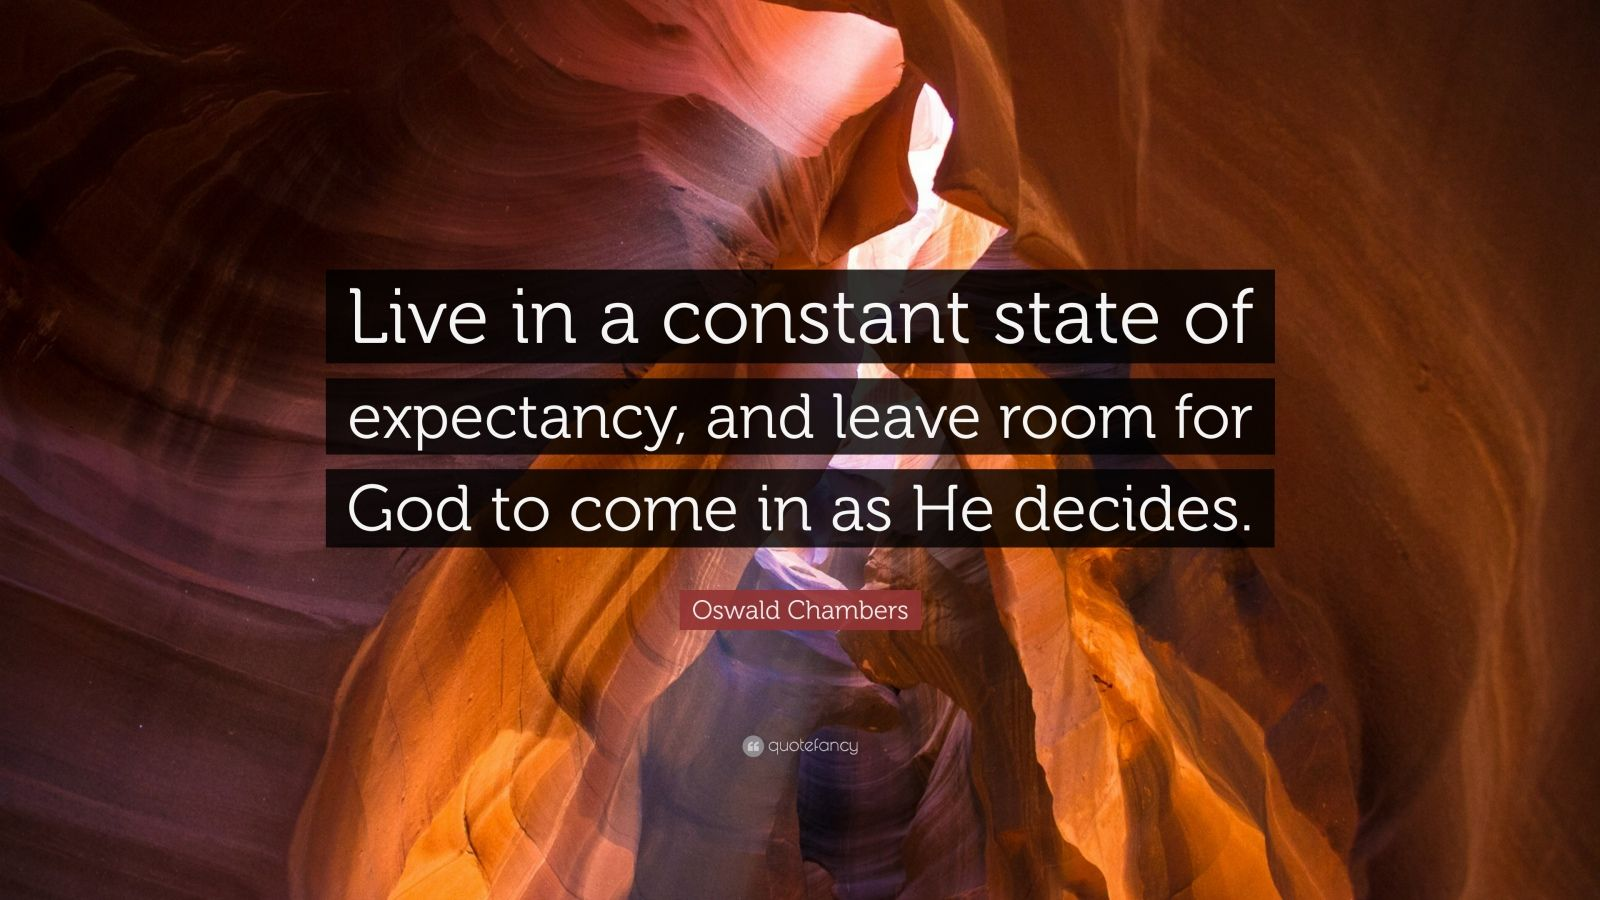 """Oswald Chambers Quote: """"Live in a constant state of expectancy, and leave room for God to come in as He decides."""""""